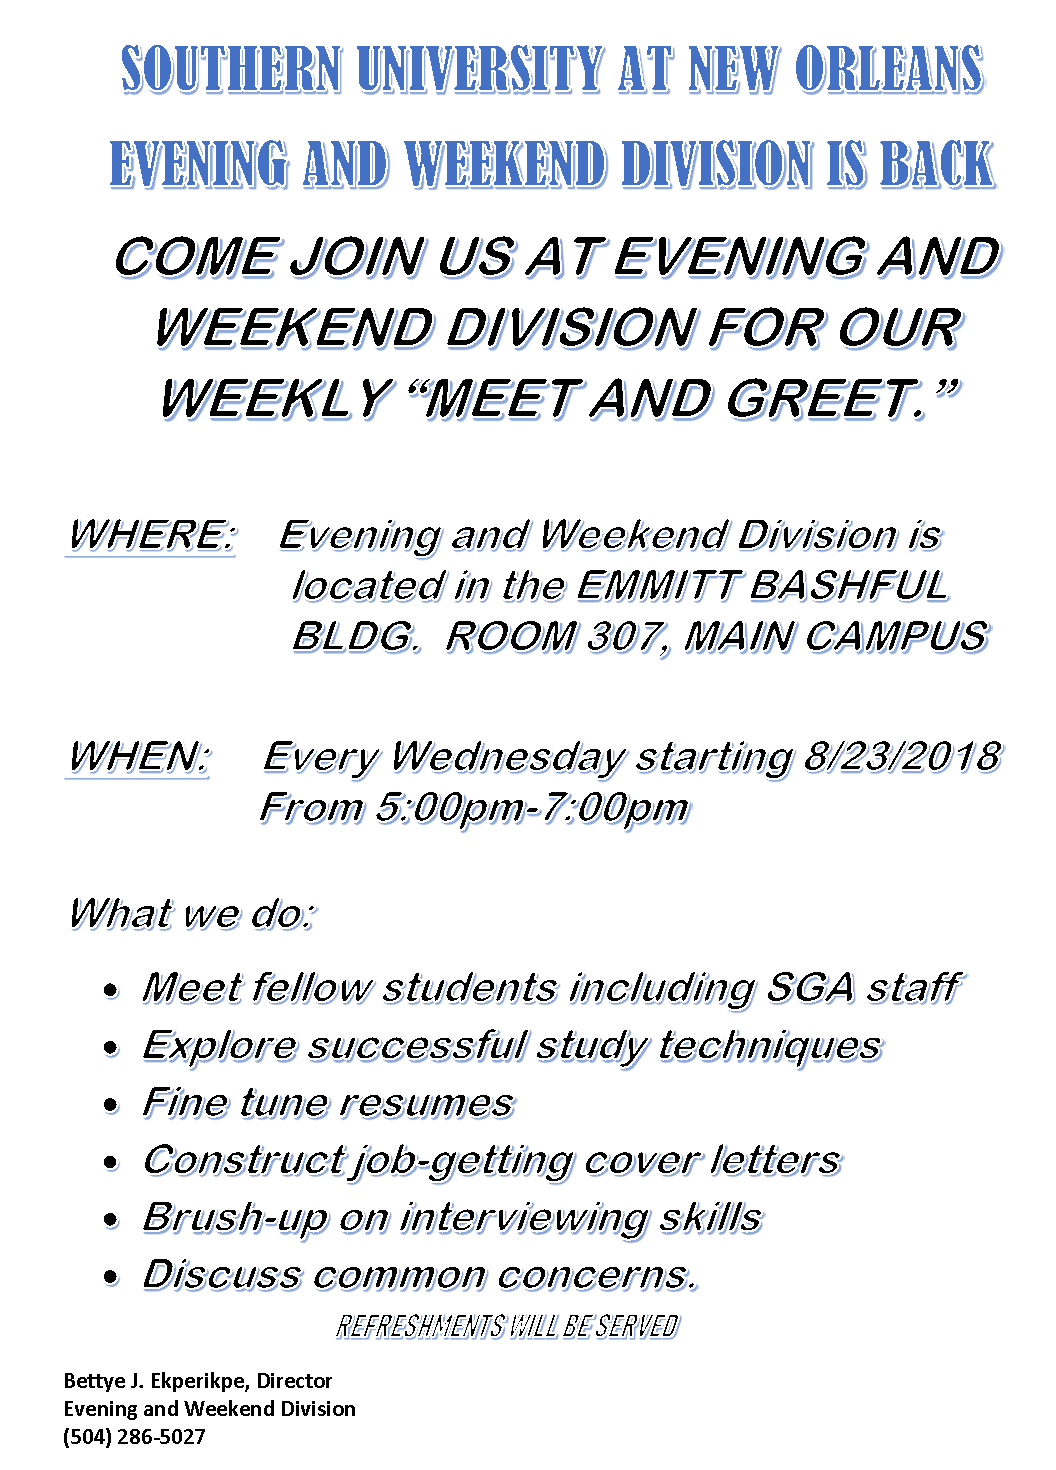 Evening and Weekend Meet and Greet Flyer